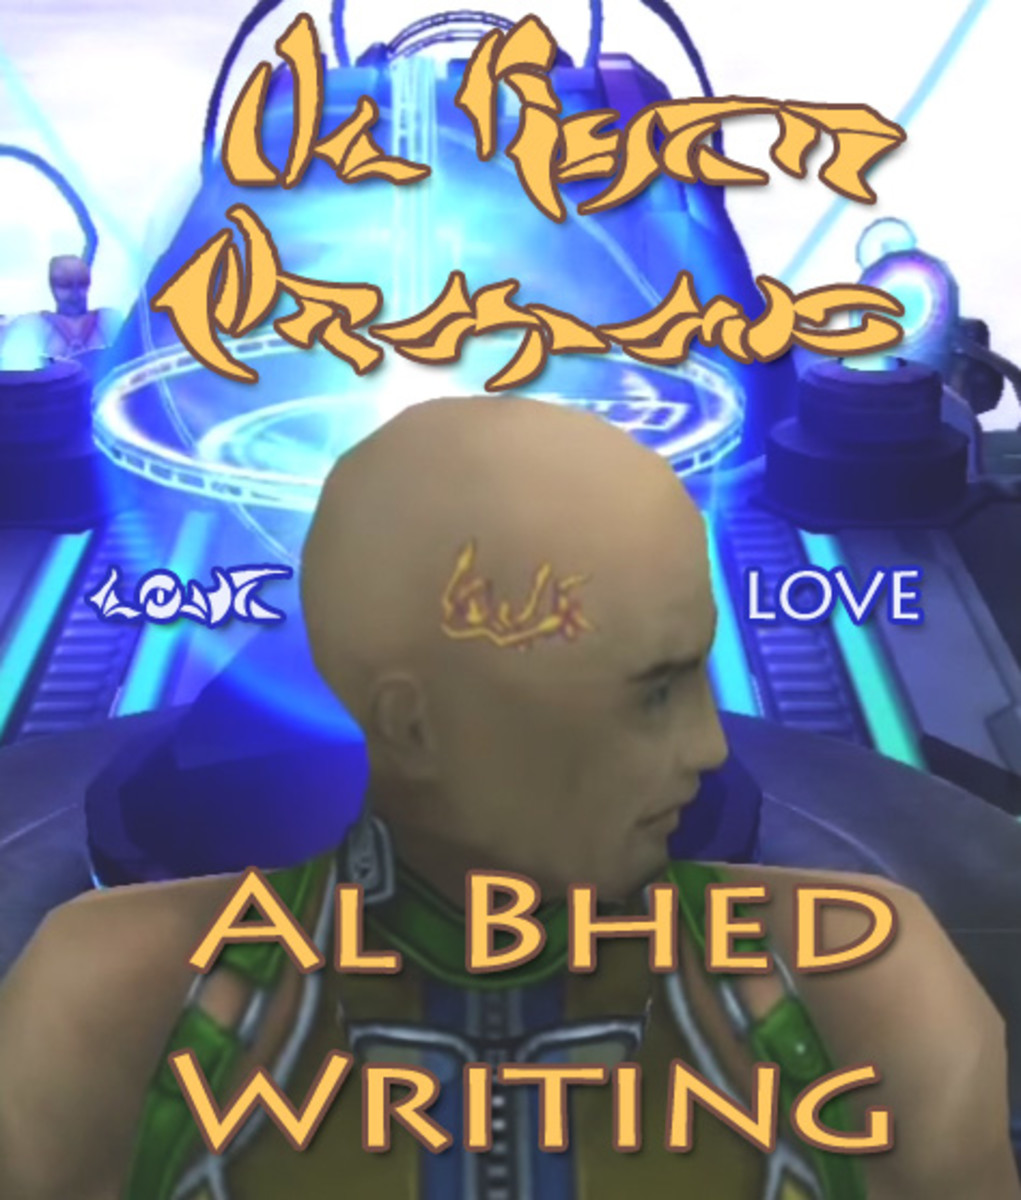 Al Bhed Writing and Signs in